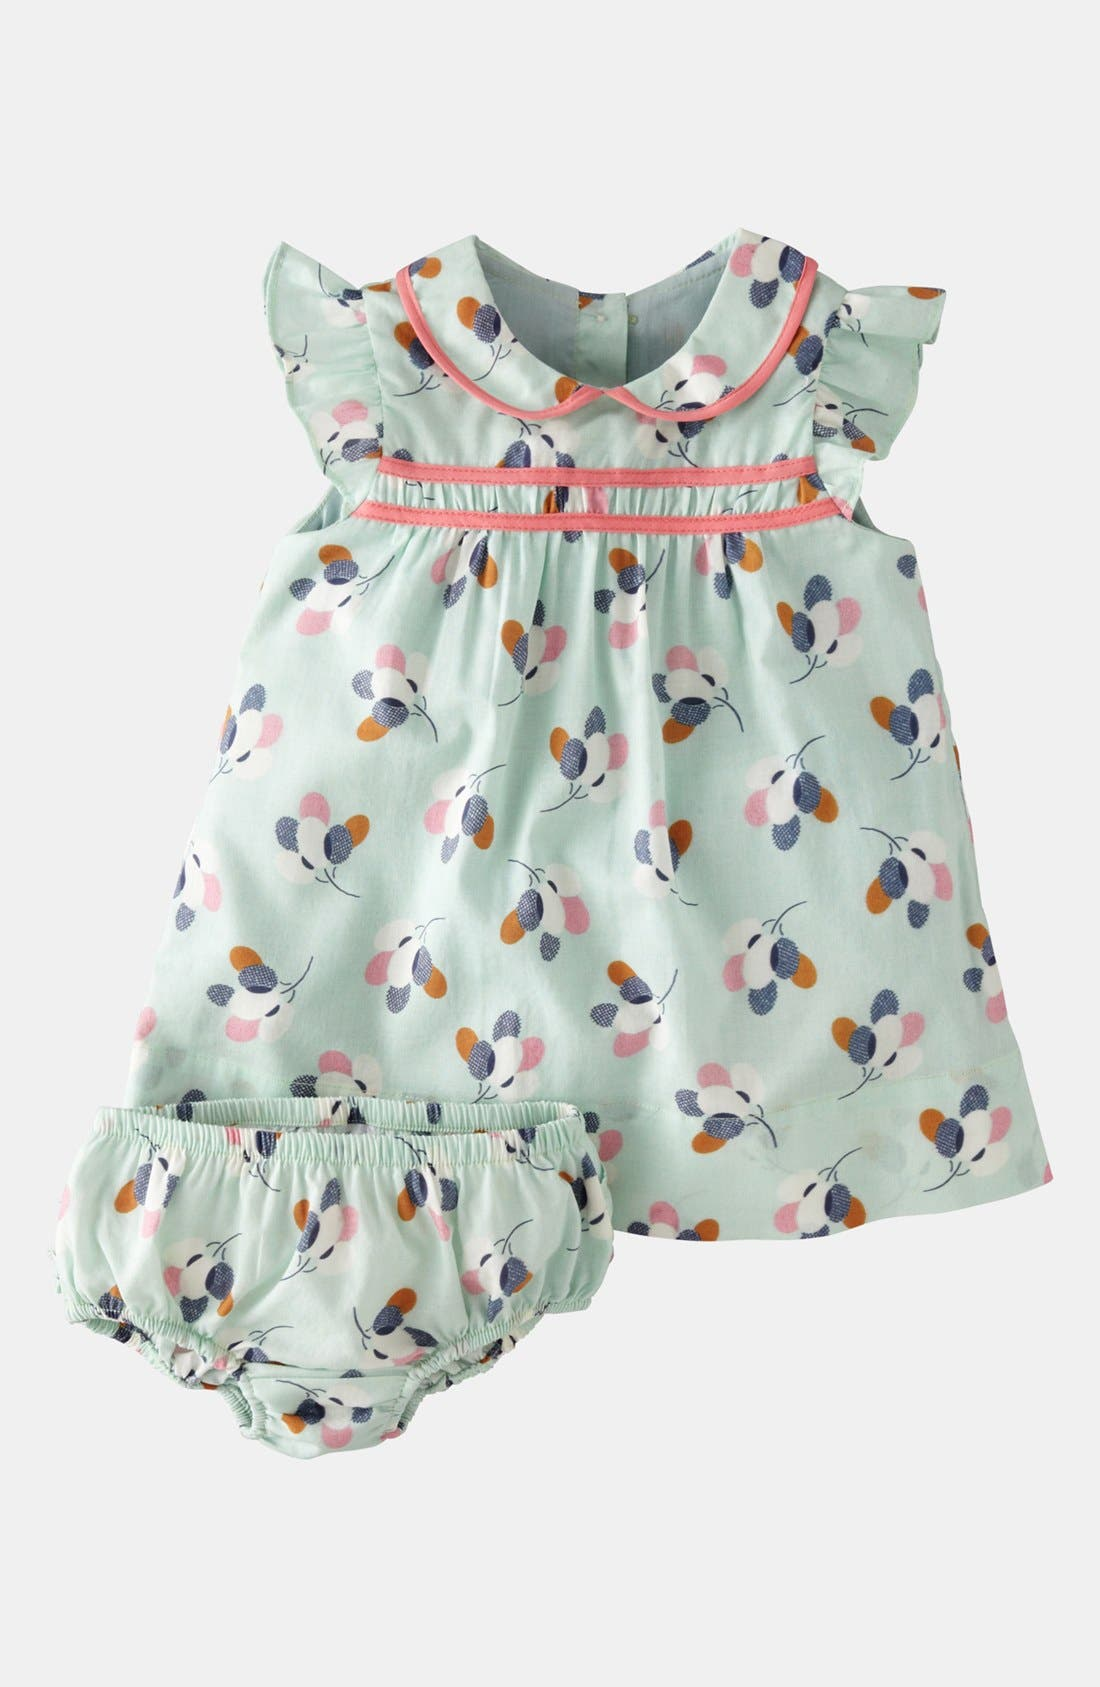 Alternate Image 1 Selected - Mini Boden 'Pretty Tea' Dress & Bloomers (Baby)